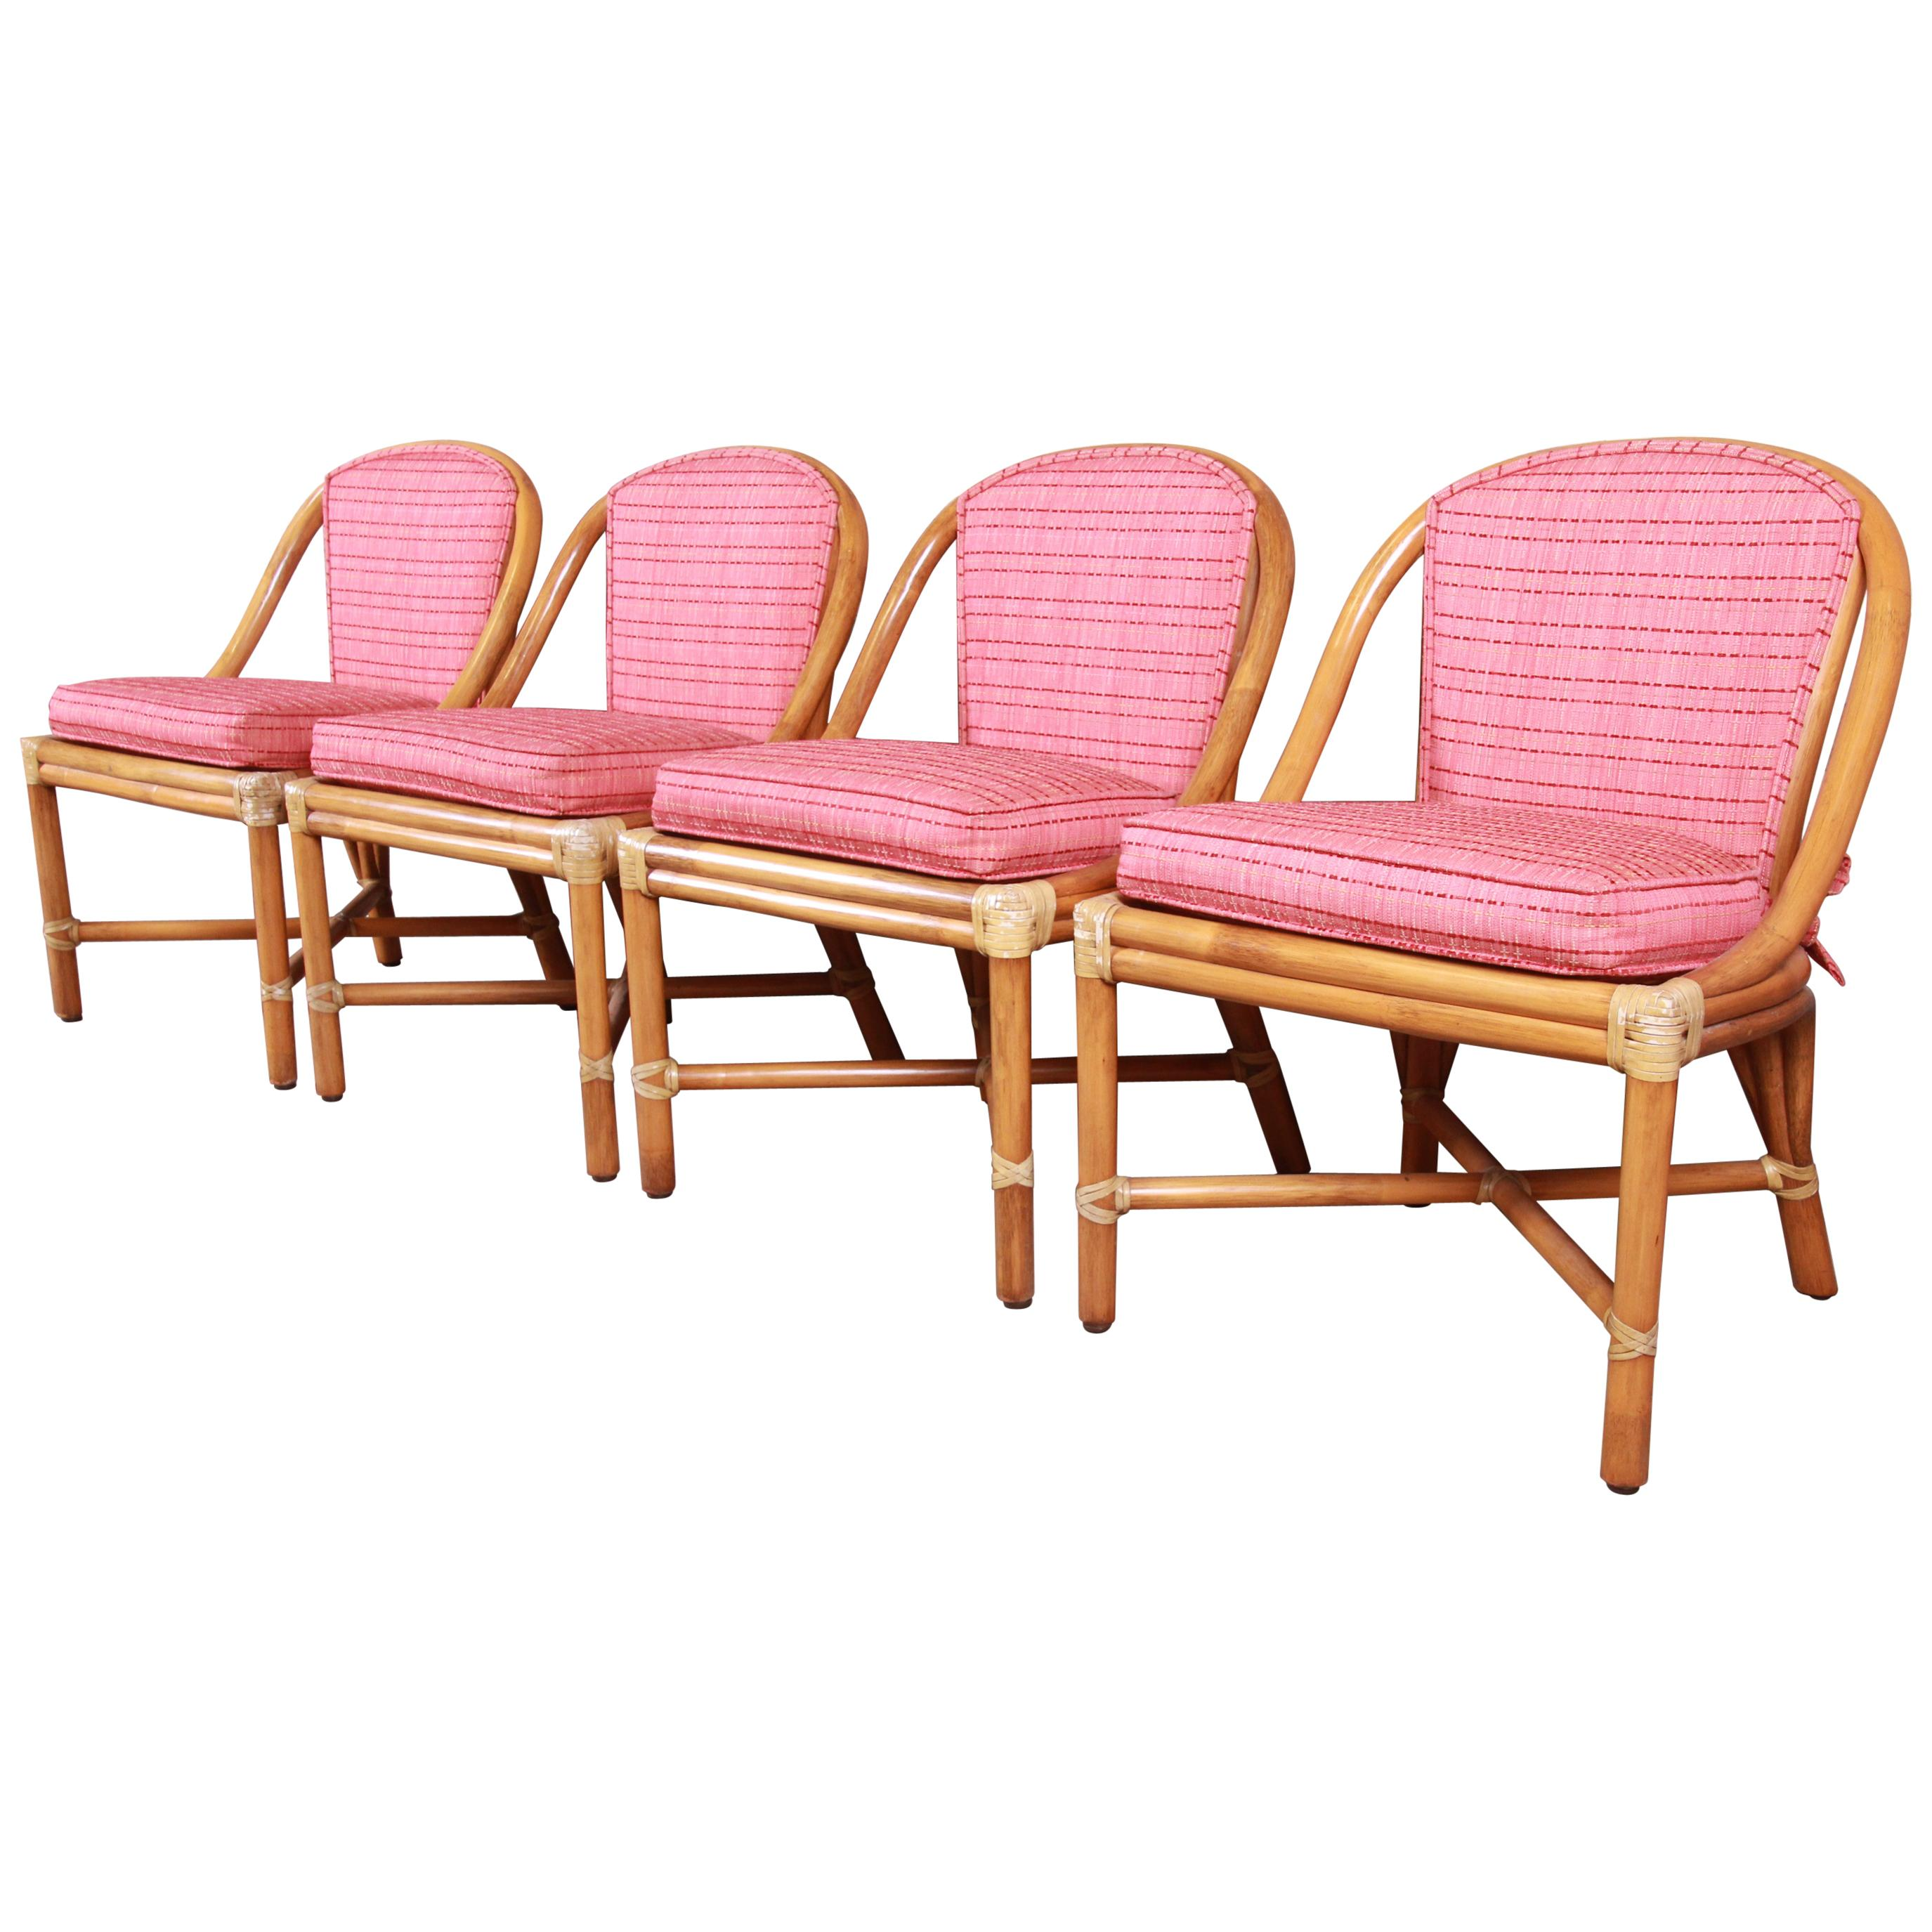 McGuire Hollywood Regency Organic Modern Bamboo Rattan Dining Chairs, Set of 4